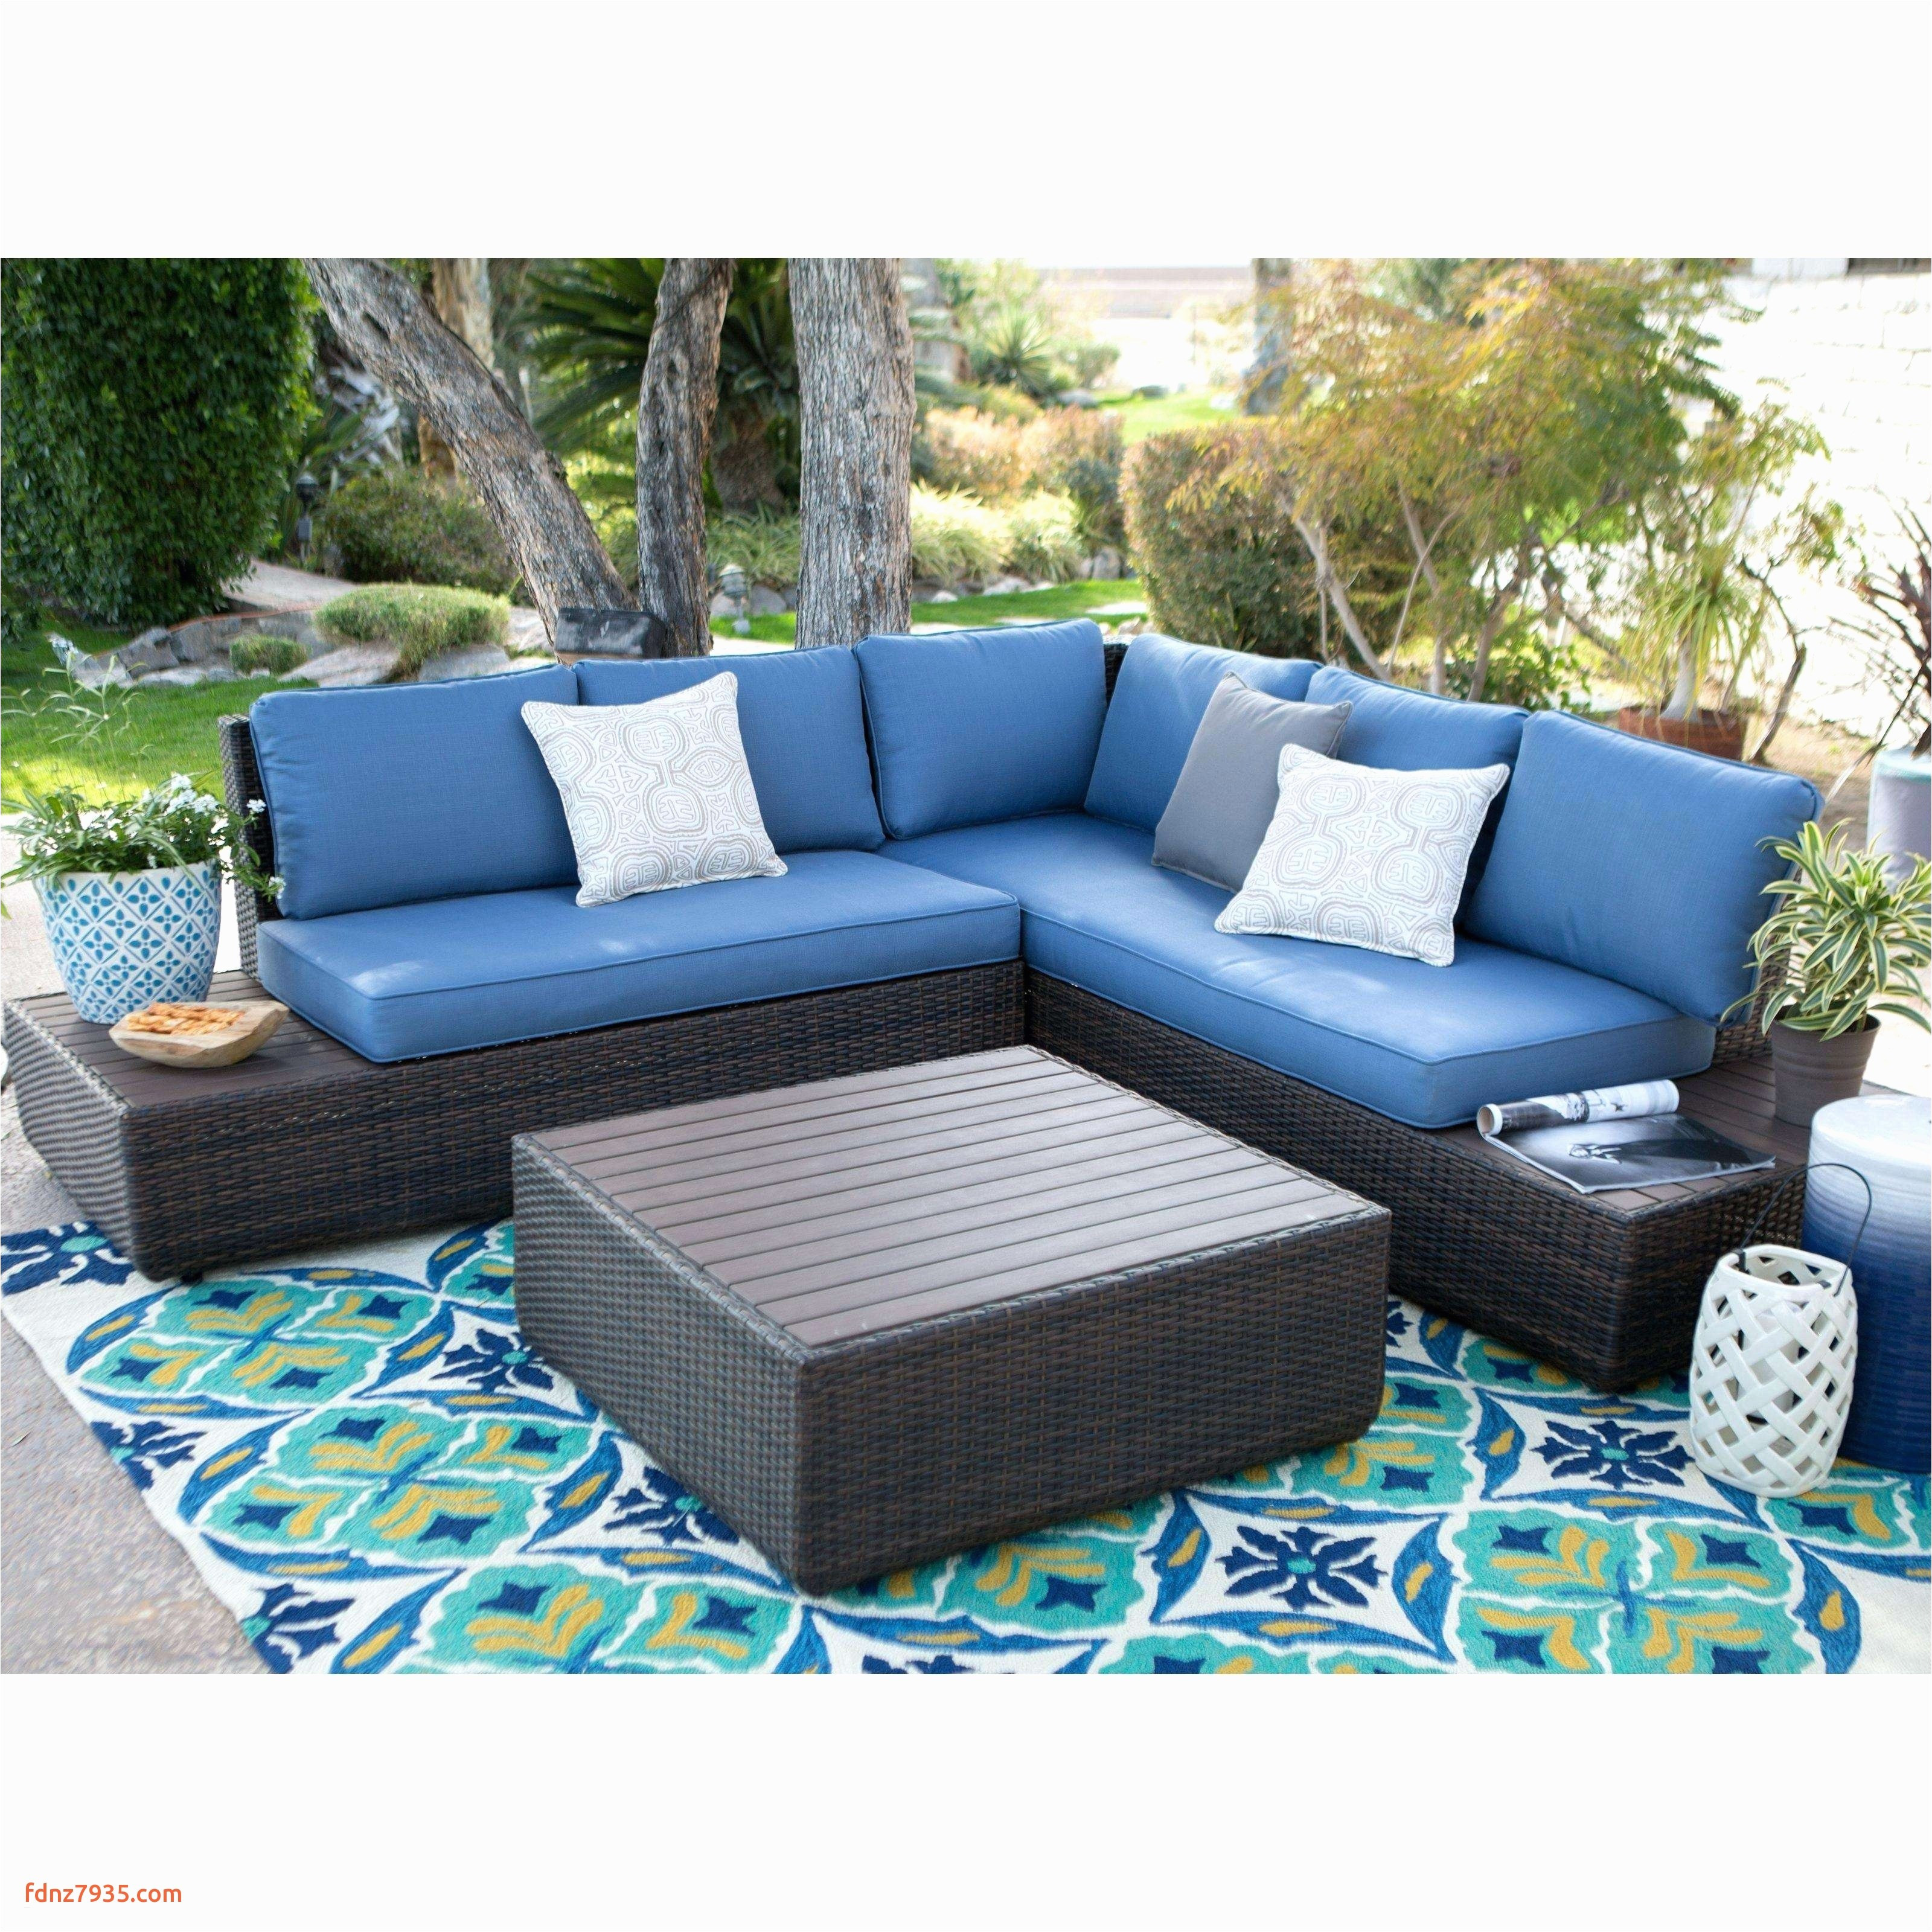 modern patio chairs unique chair pads awesome wicker outdoor sofa 0d patio chairs sale